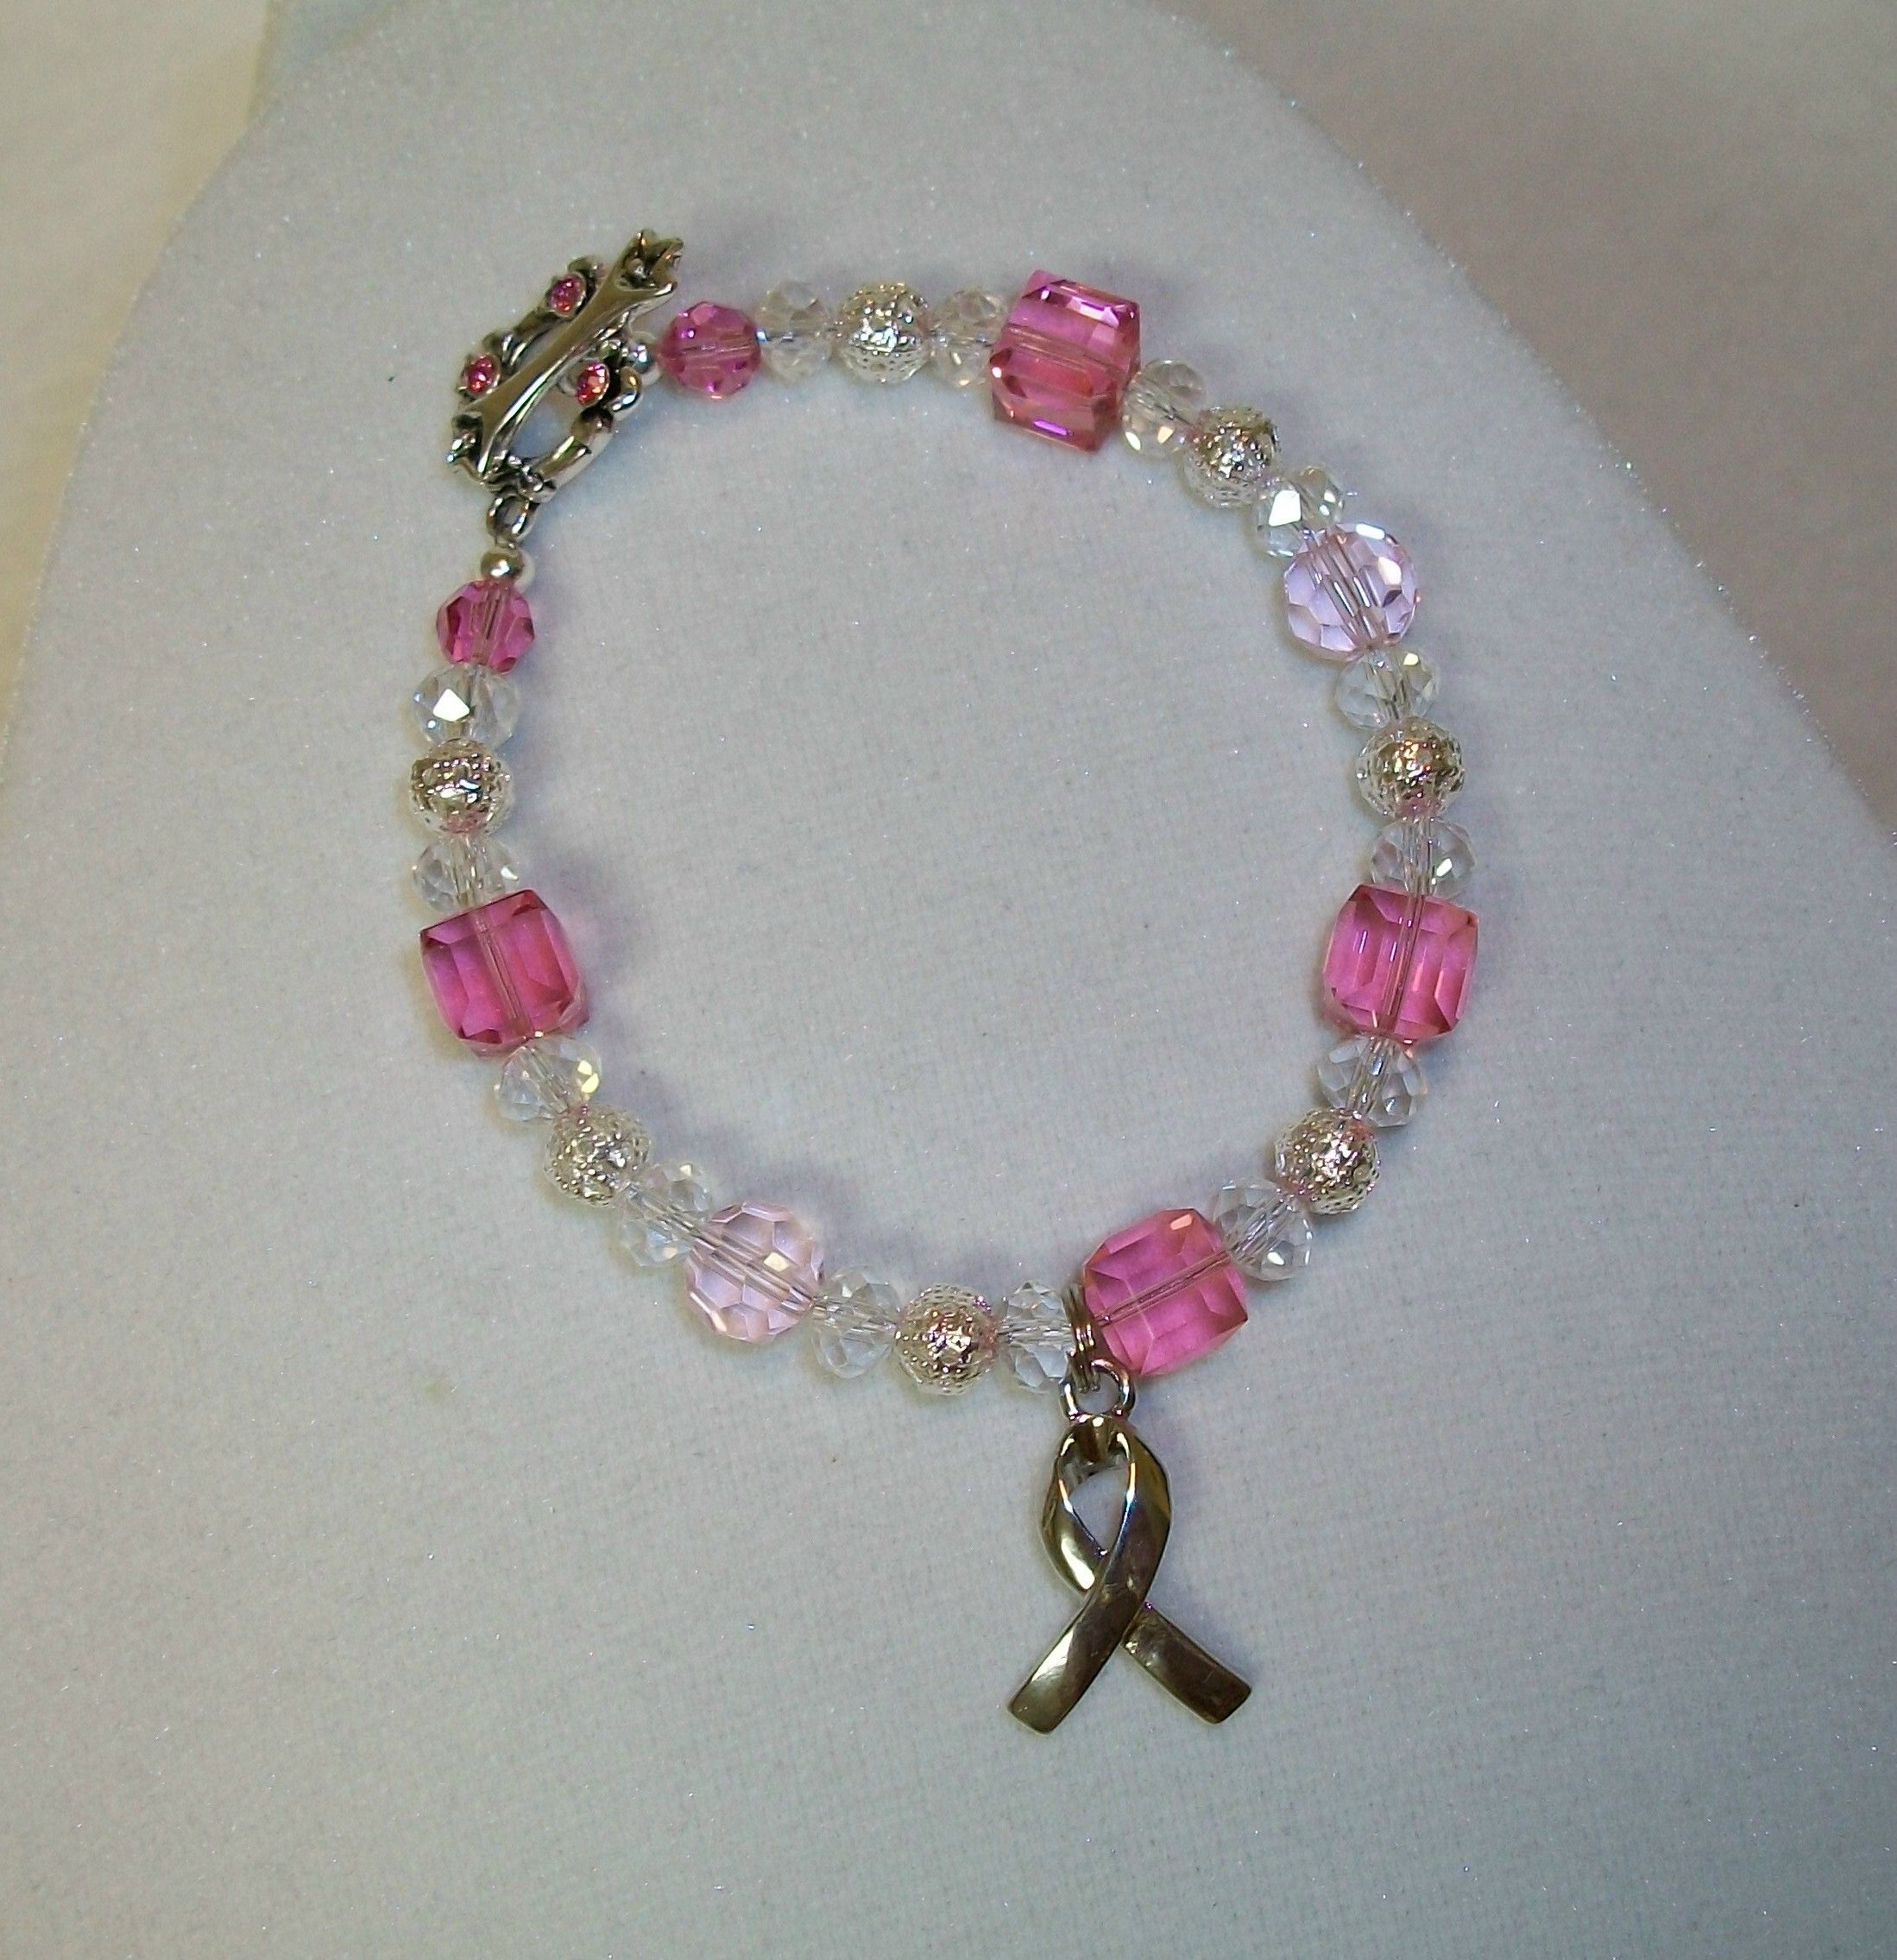 cancer products support berluti the ovarian sisco awareness dsc bracelet